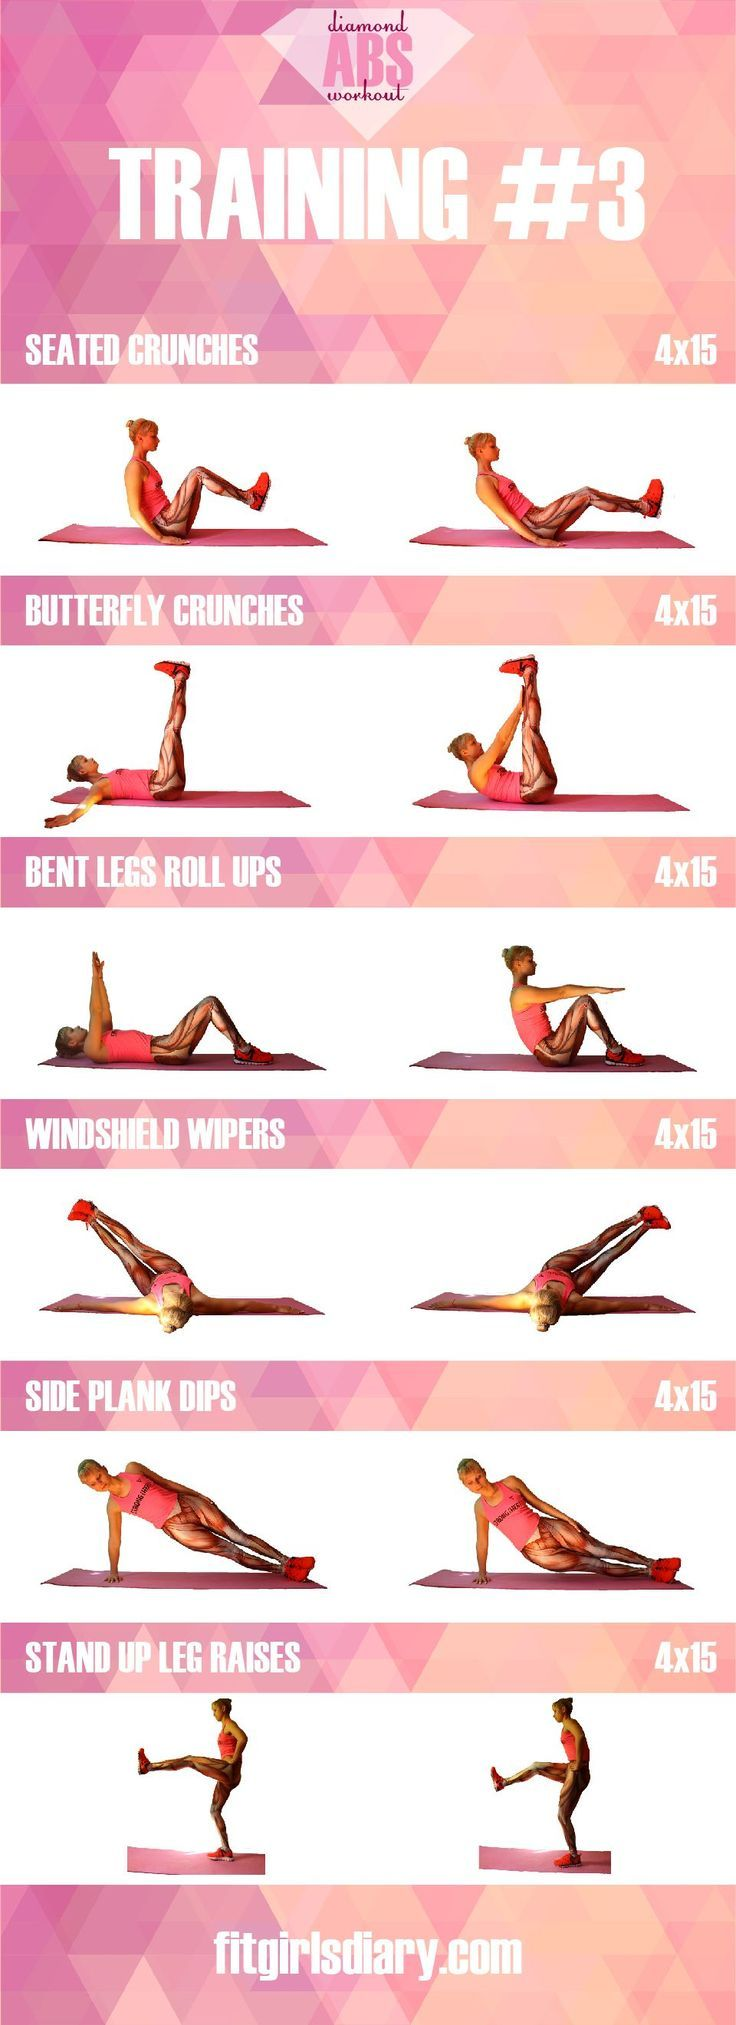 Diamond Abs Workout – Collection Of The Best Ab Exercises for Women — This is my story of how I managed to finally lose my belly fat and get sexy abs. — Today, I will give you my very own solution to this problem I struggled with for years – losing the muffin top and …